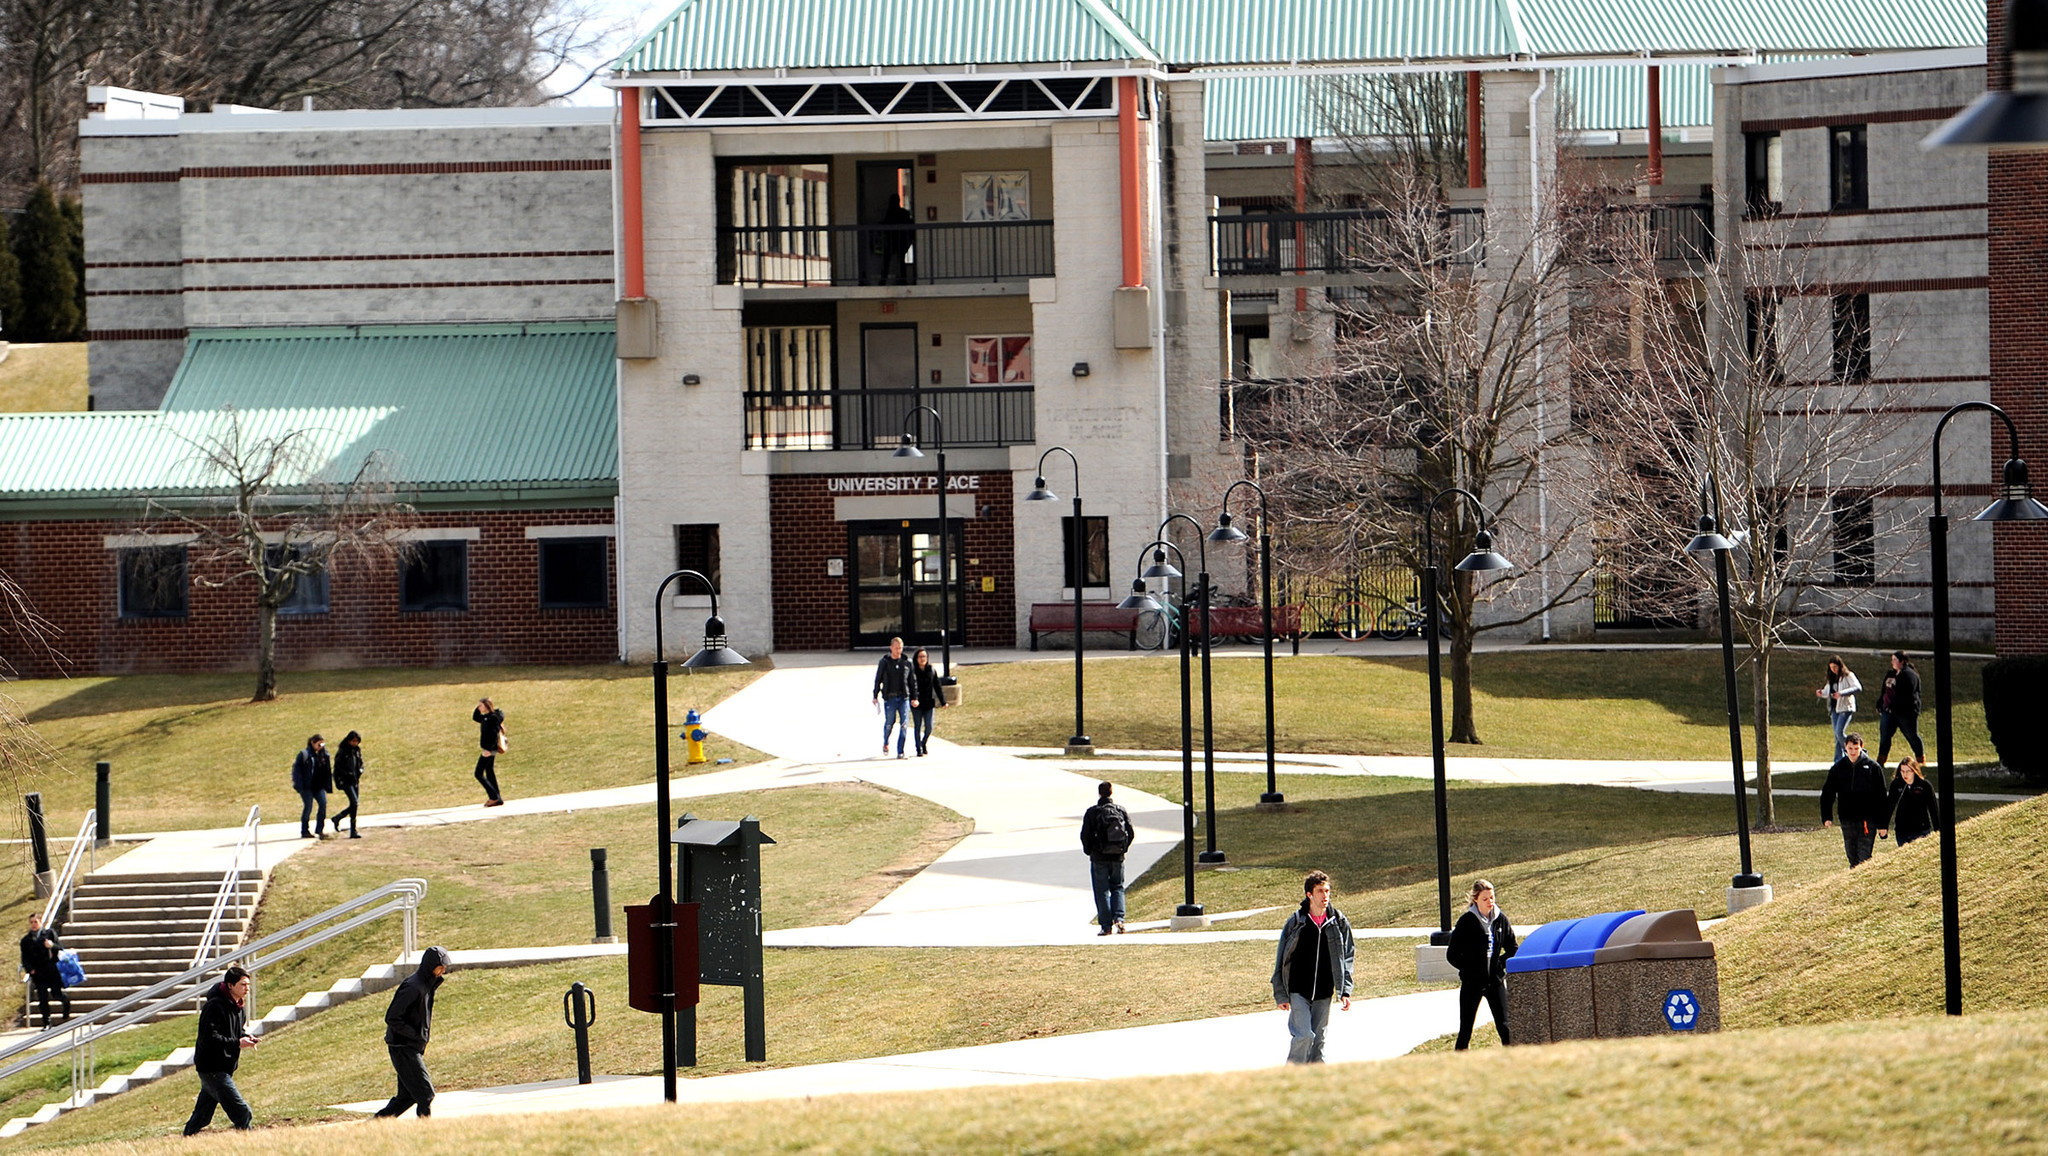 Kutztown allows guns on campus - The Morning Call on georgian court campus map, lawrence campus map, west alabama campus map, lyons campus map, wayne campus map, delaware valley campus map, western state campus map, bedford campus map, altoona campus map, saginaw valley campus map, kingston campus map, abilene christian campus map, marietta campus map, southern connecticut state campus map, ambler campus map, ashland campus map, hershey campus map, ouachita baptist campus map, newark campus map, university of pennsylvania campus map,